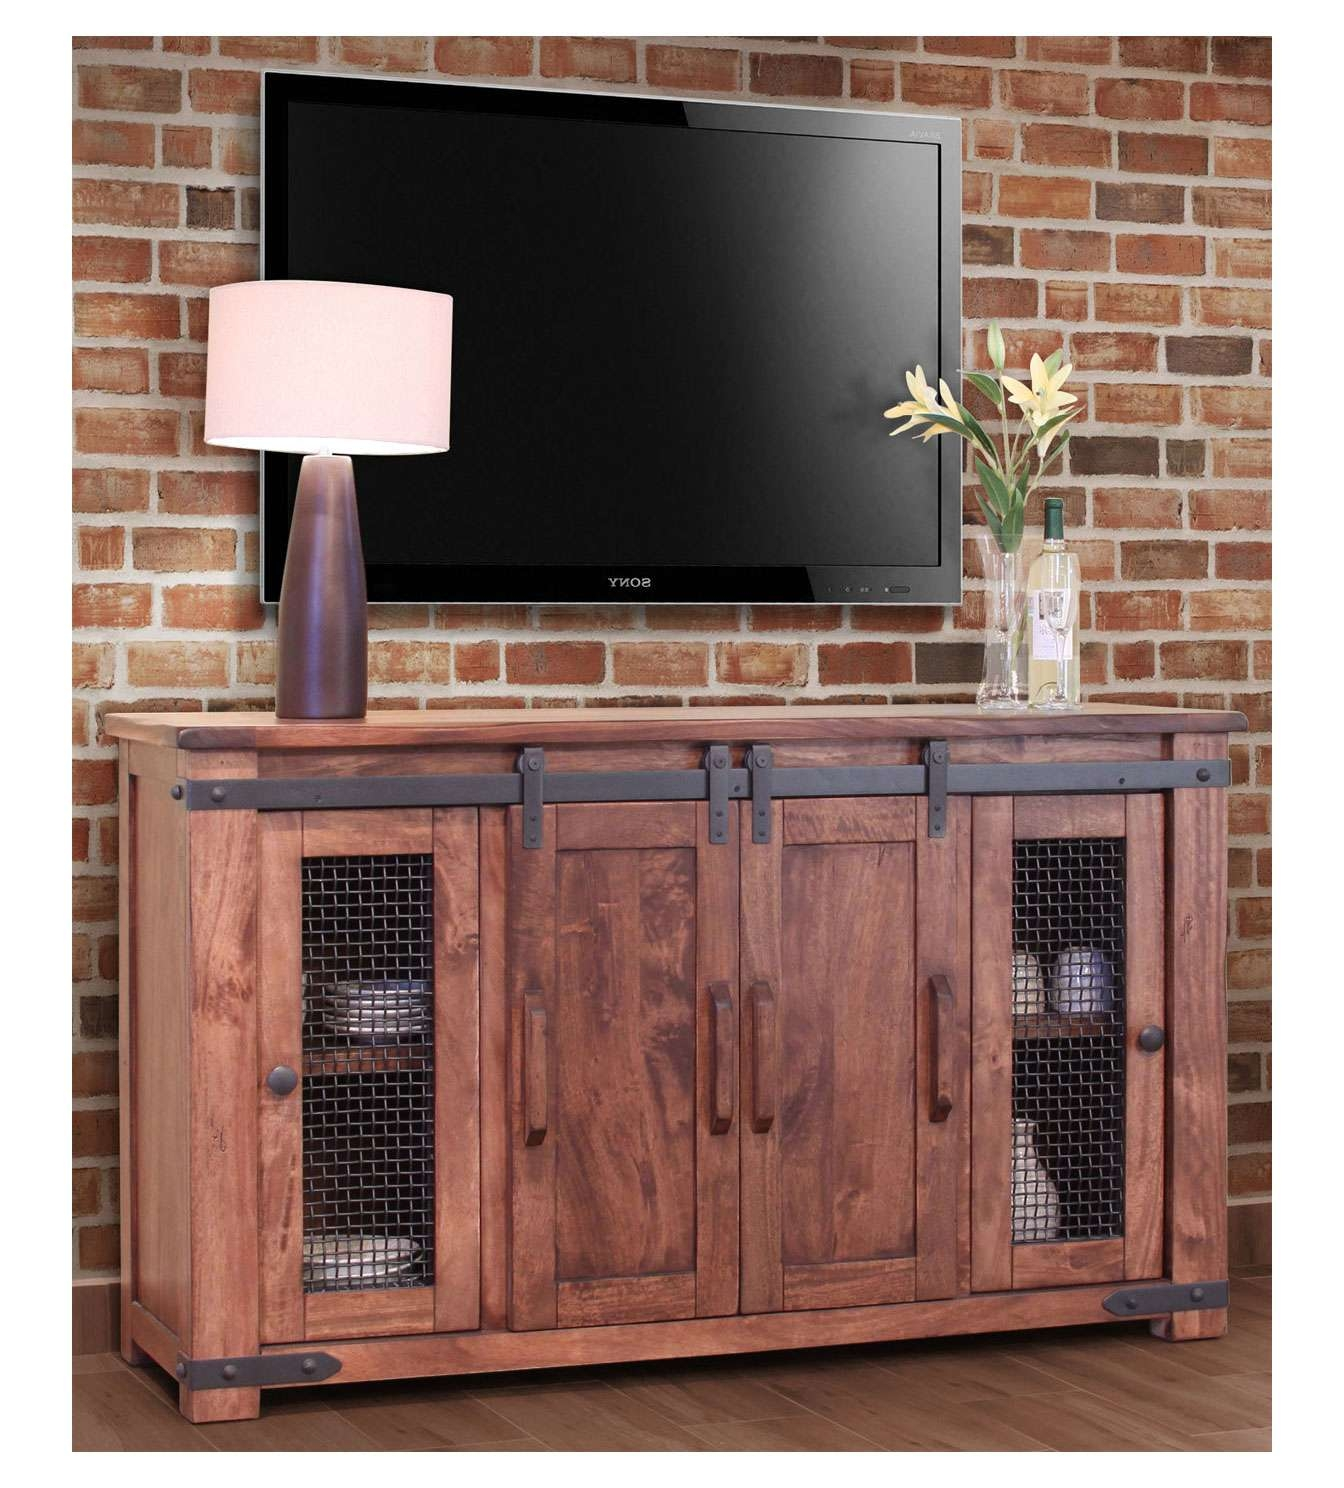 Tv : Best Rustic Tv Stand Designs Beautiful Rustic Tv Cabinets In Corner Tv Cabinets For Flat Screens With Doors (View 20 of 20)